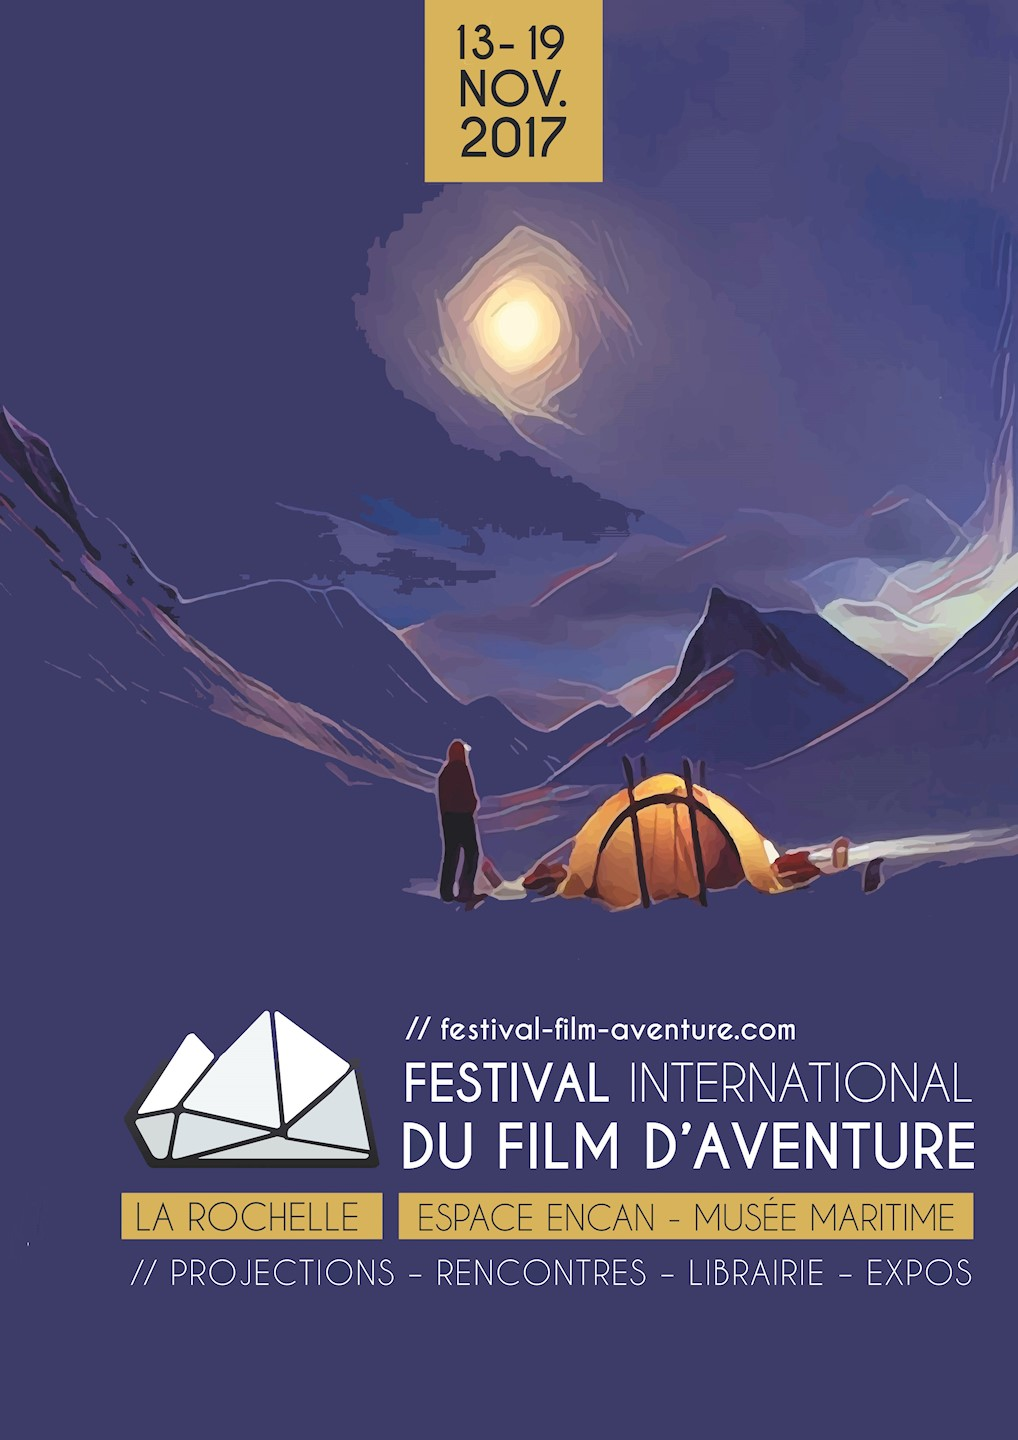 Affiche de la 14ème édition du Festival International du Film d'Aventure